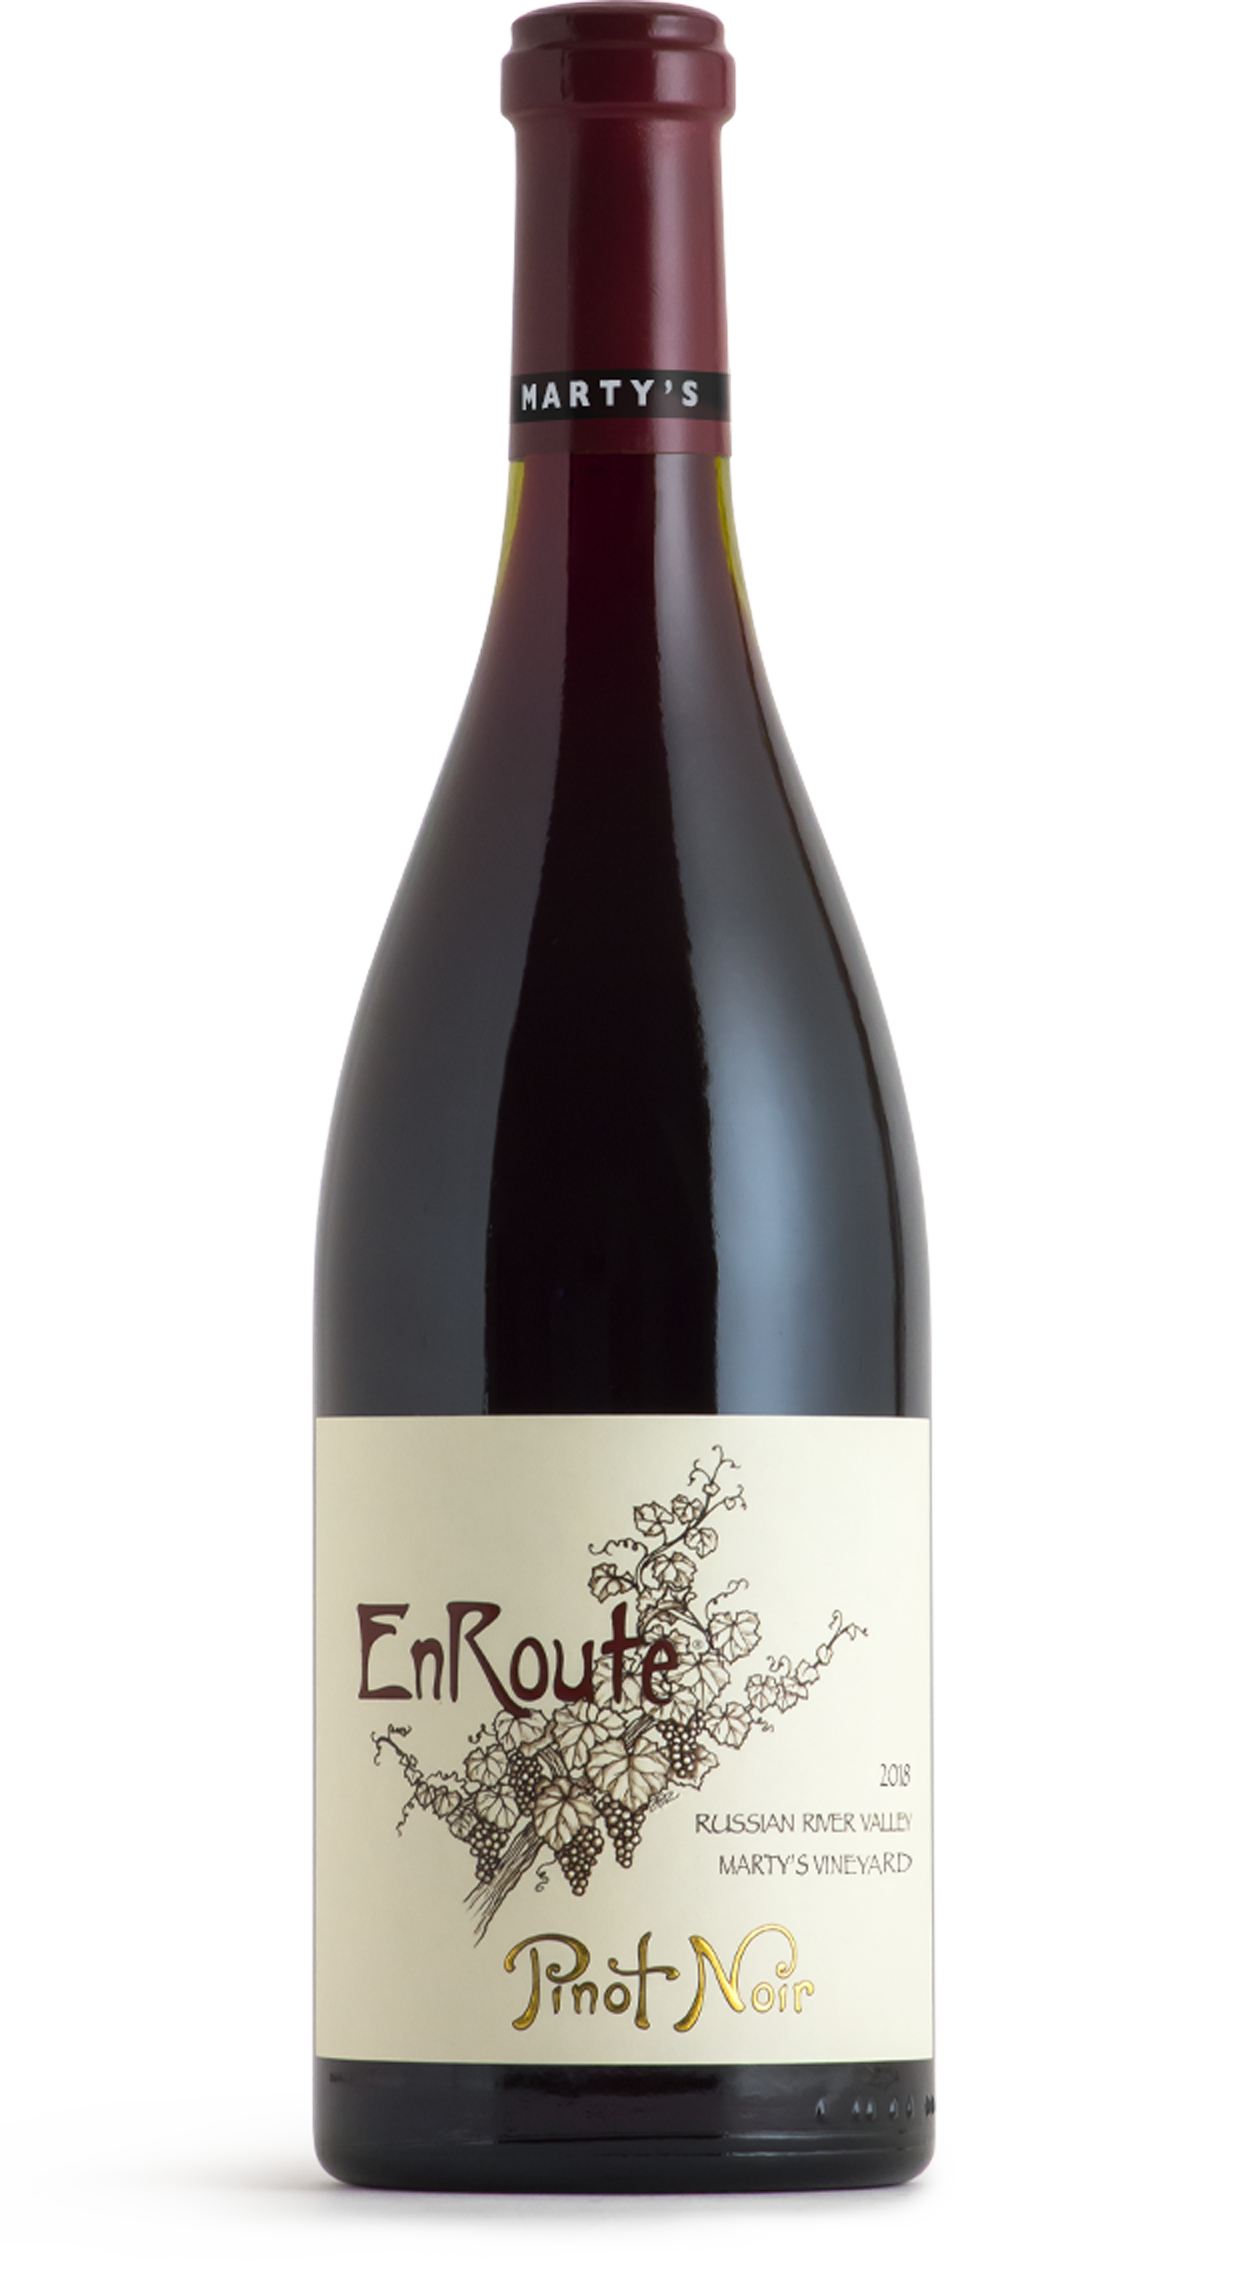 2018 EnRoute Marty's Vineyard Pinot Noir